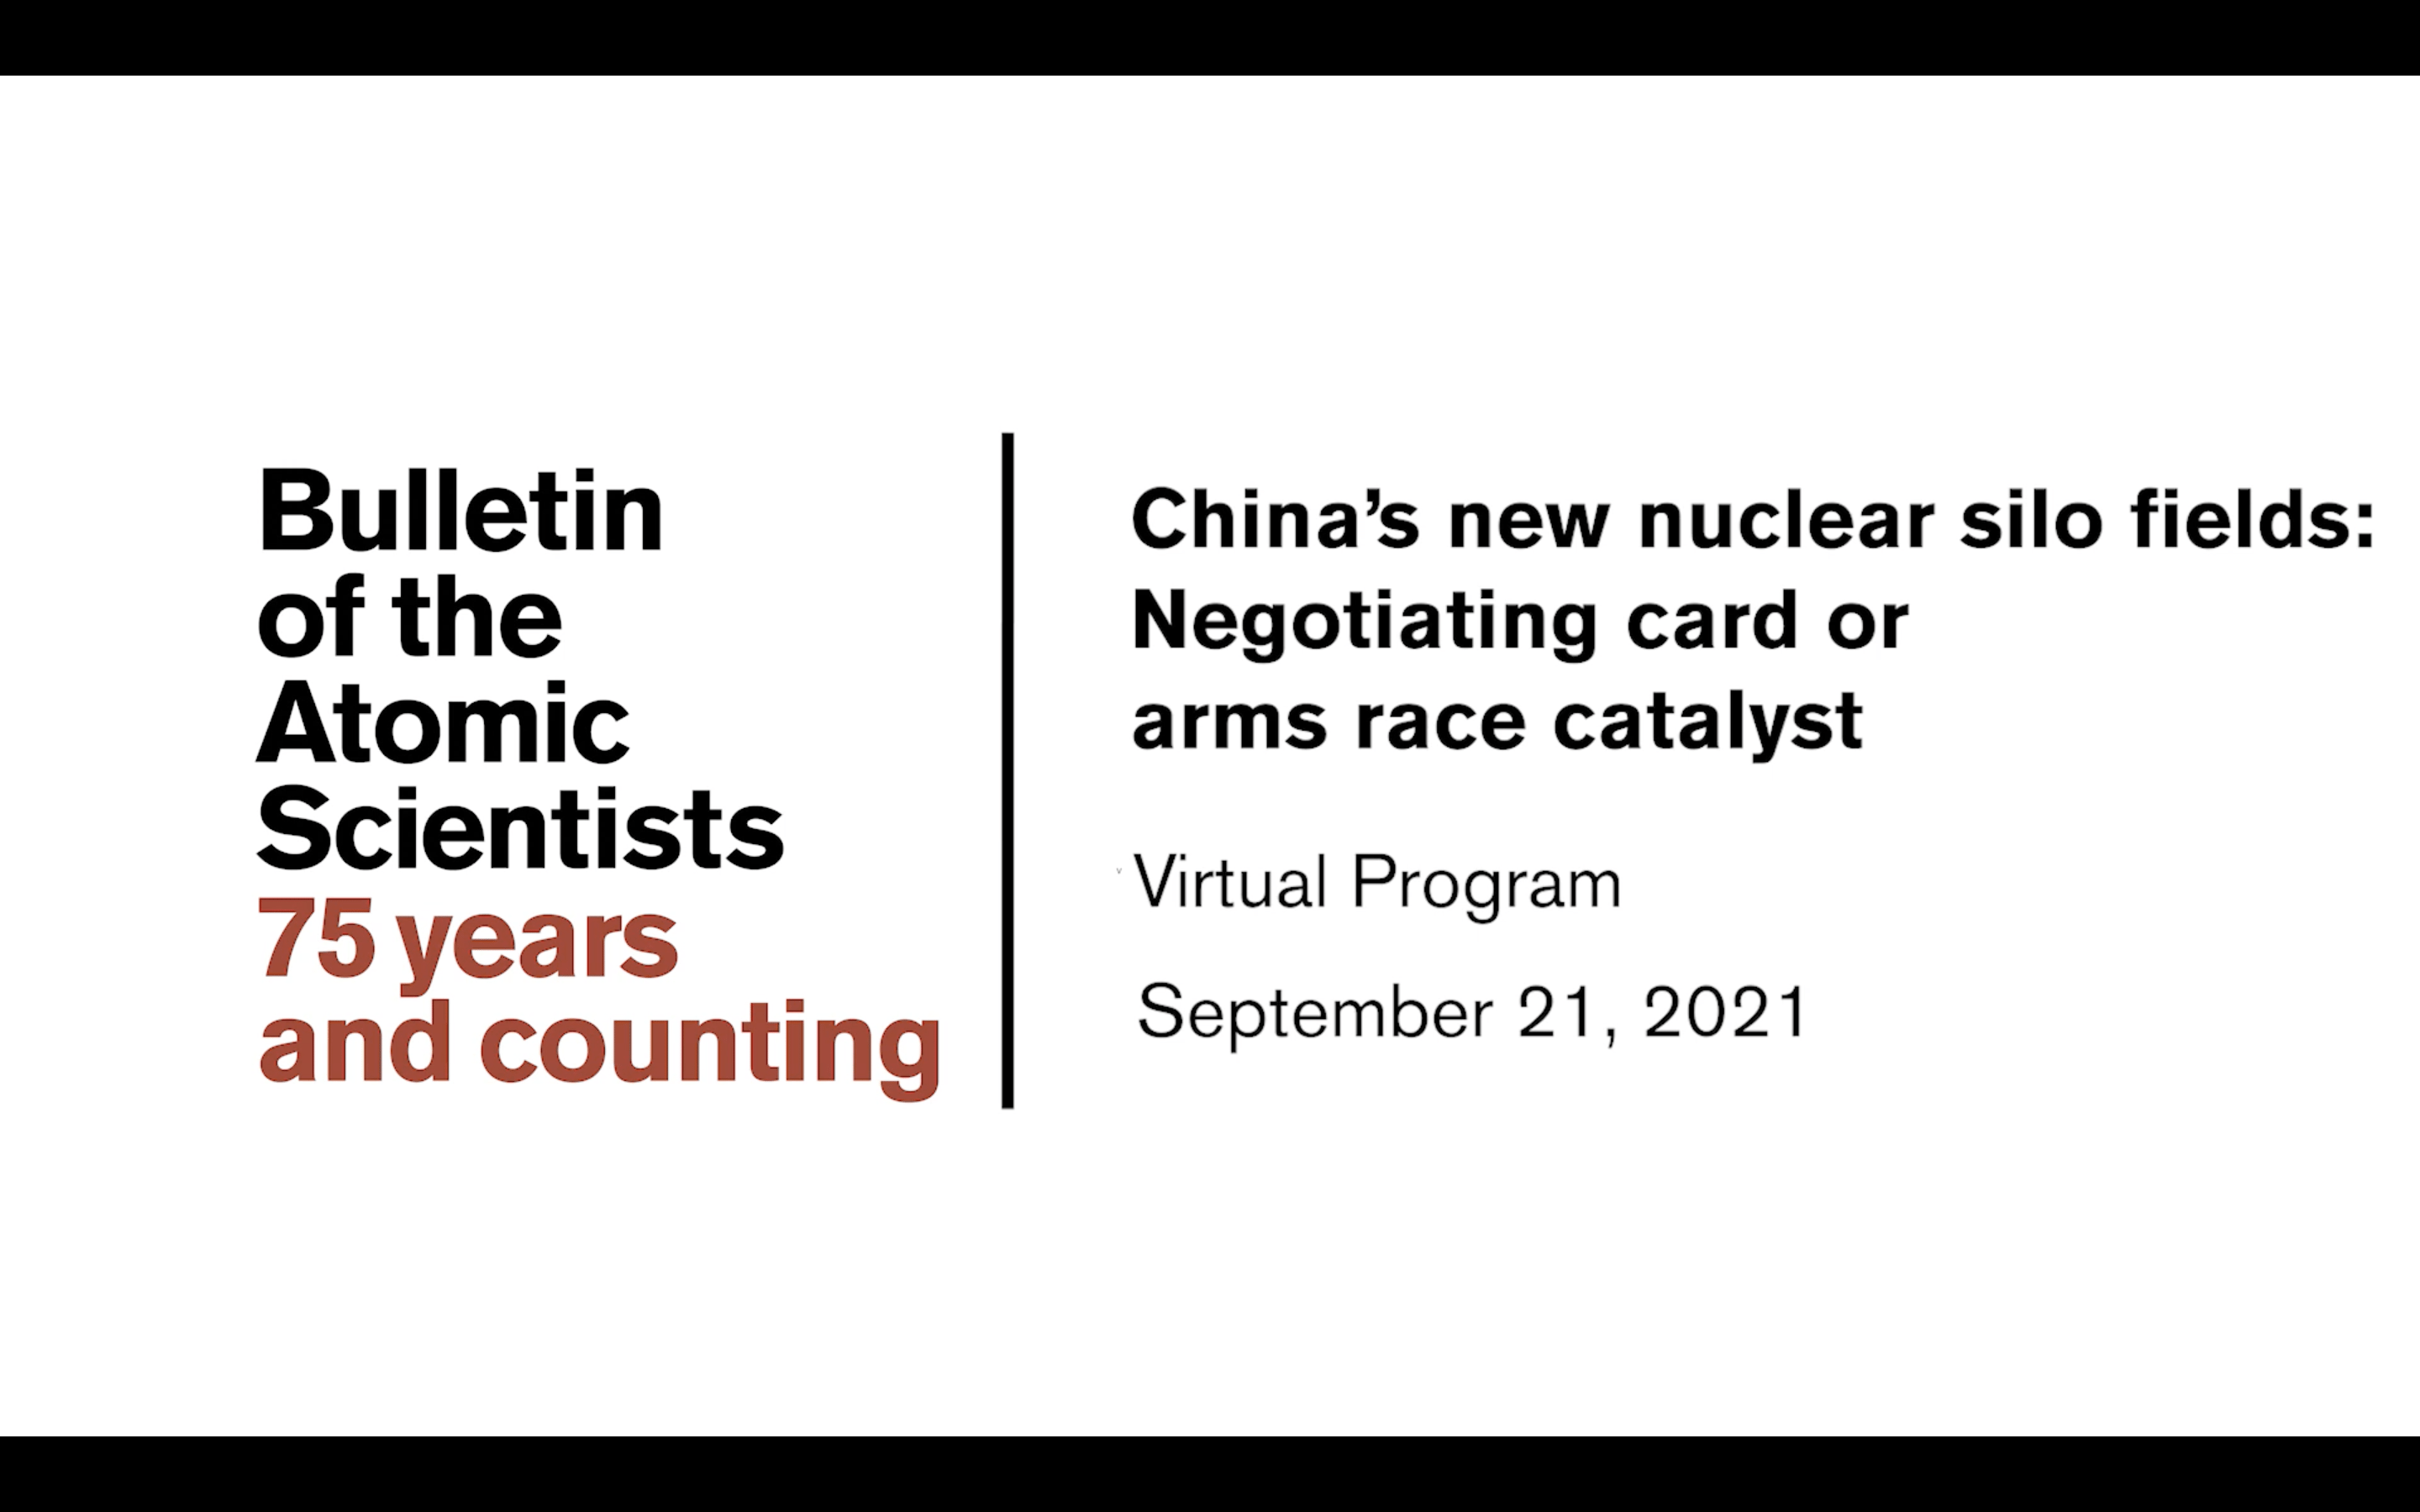 Watch Now—China's New Nuclear Silo Fields: Negotiating Card or Arms Race Catalyst